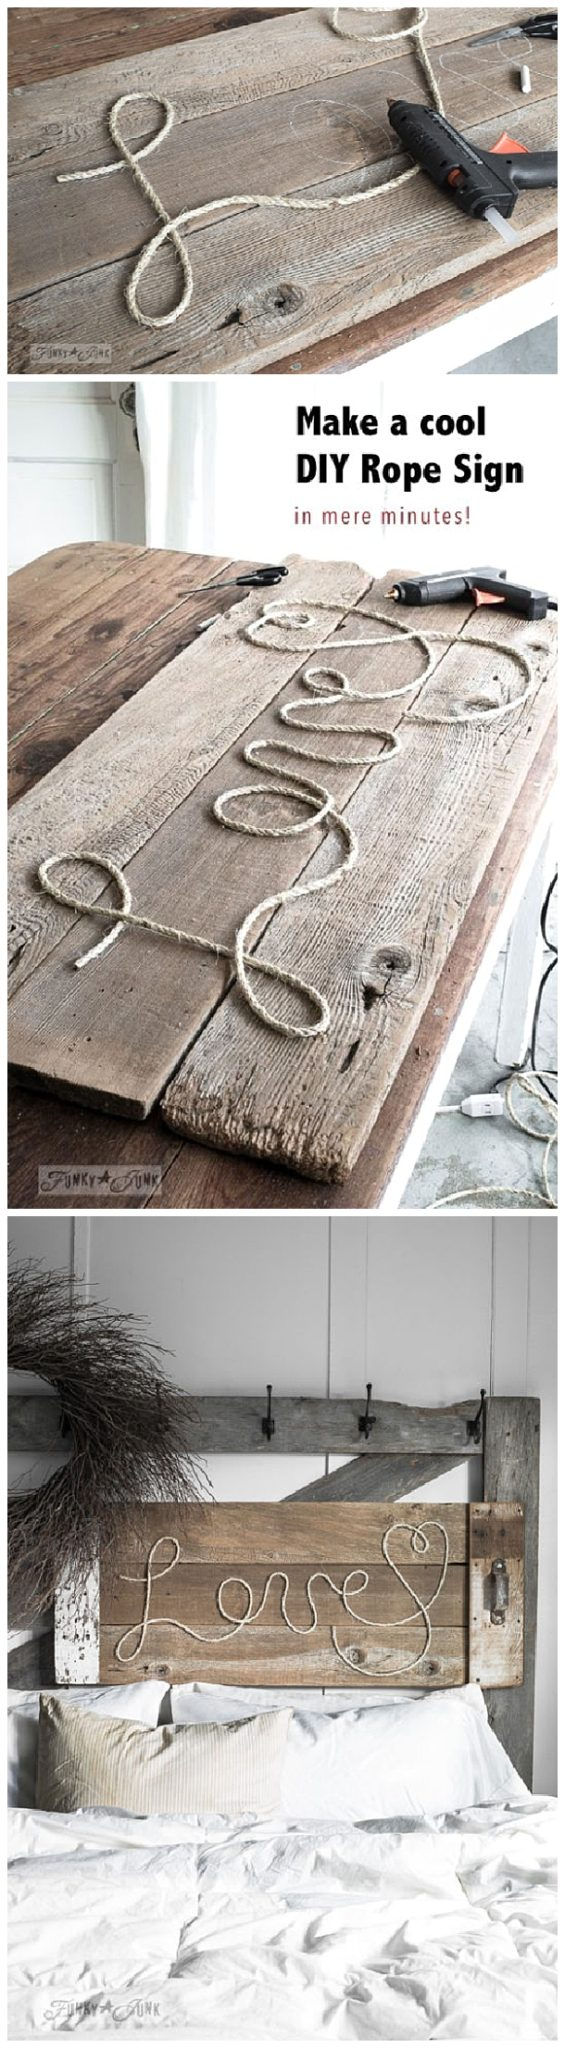 Make a cool DIY Rope Sign like this one... in minutes! So cool, cheap and fun to personalize for anyone on your gift list! DIY Rope Sign Tutorial #diygifts #handmadegifts #diygiftideas #giftstomake #christmasgifts #giftsforher #giftideas